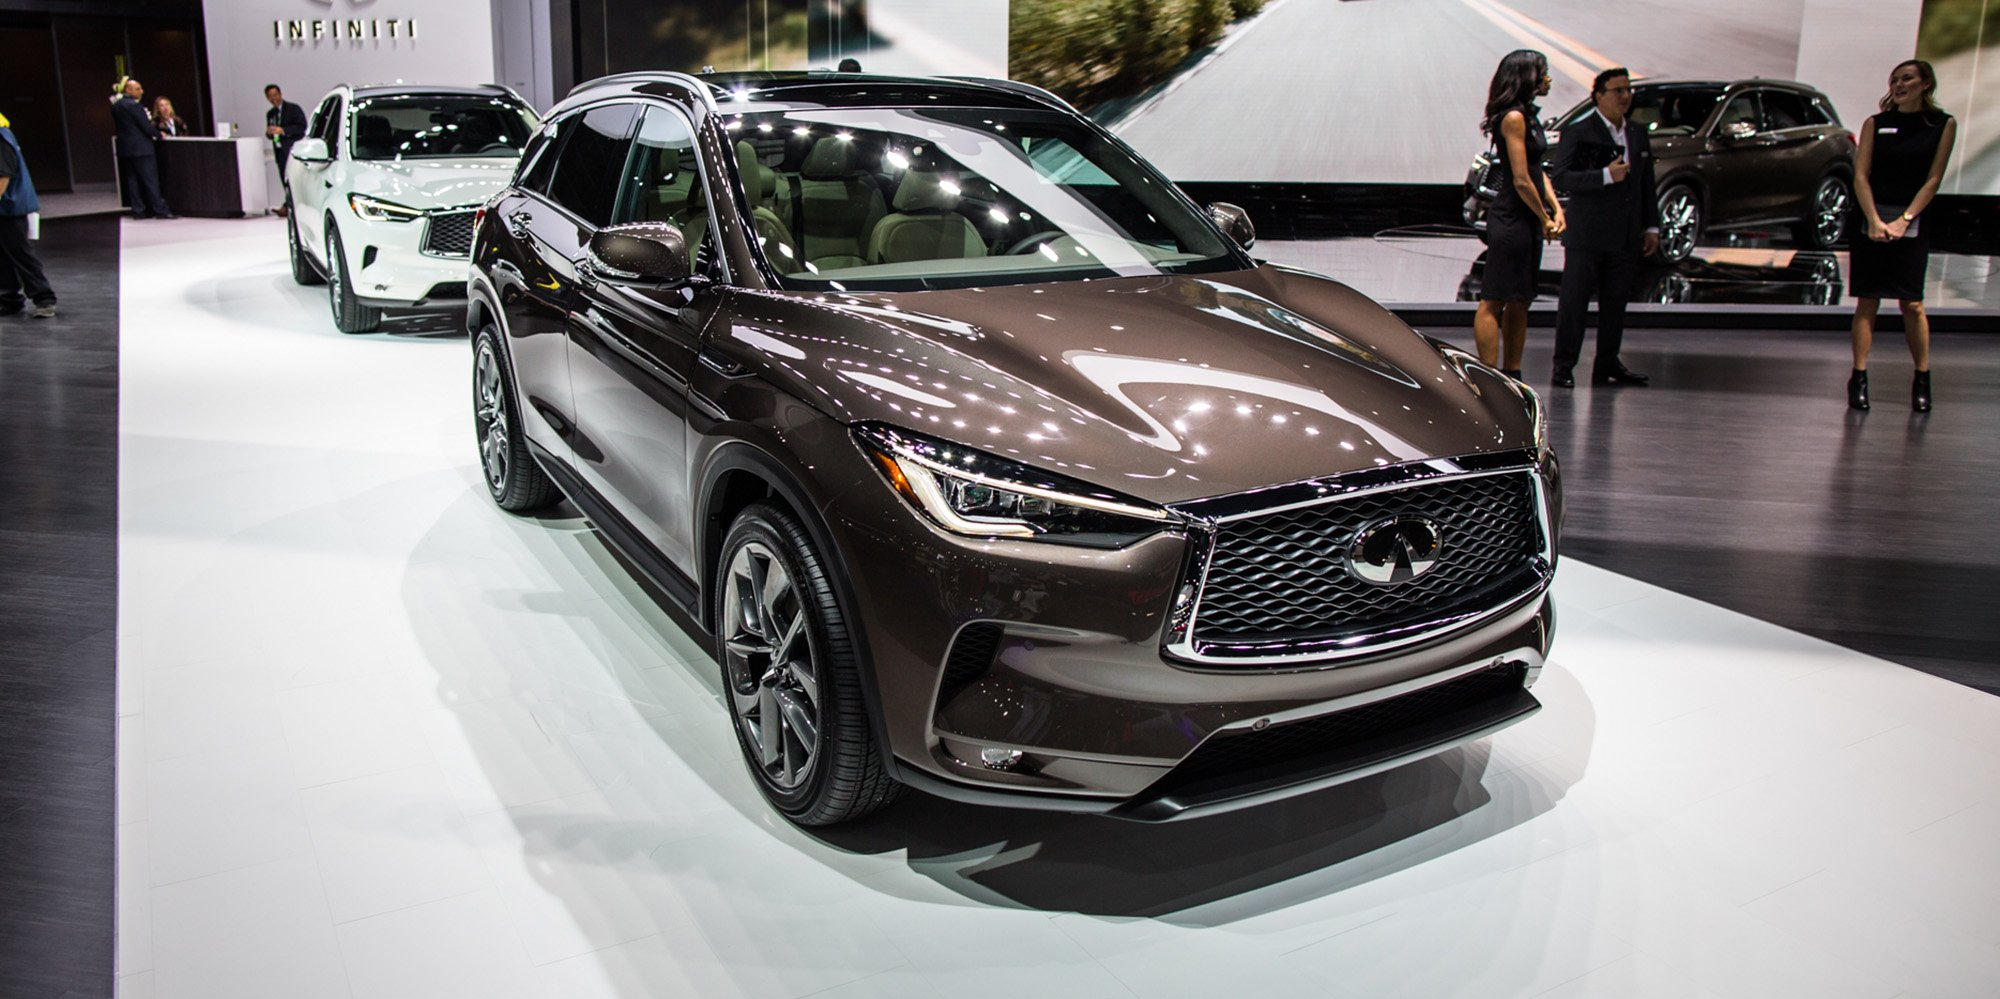 2018 Infiniti QX50 fully unveiled in LA - photos | CarAdvice